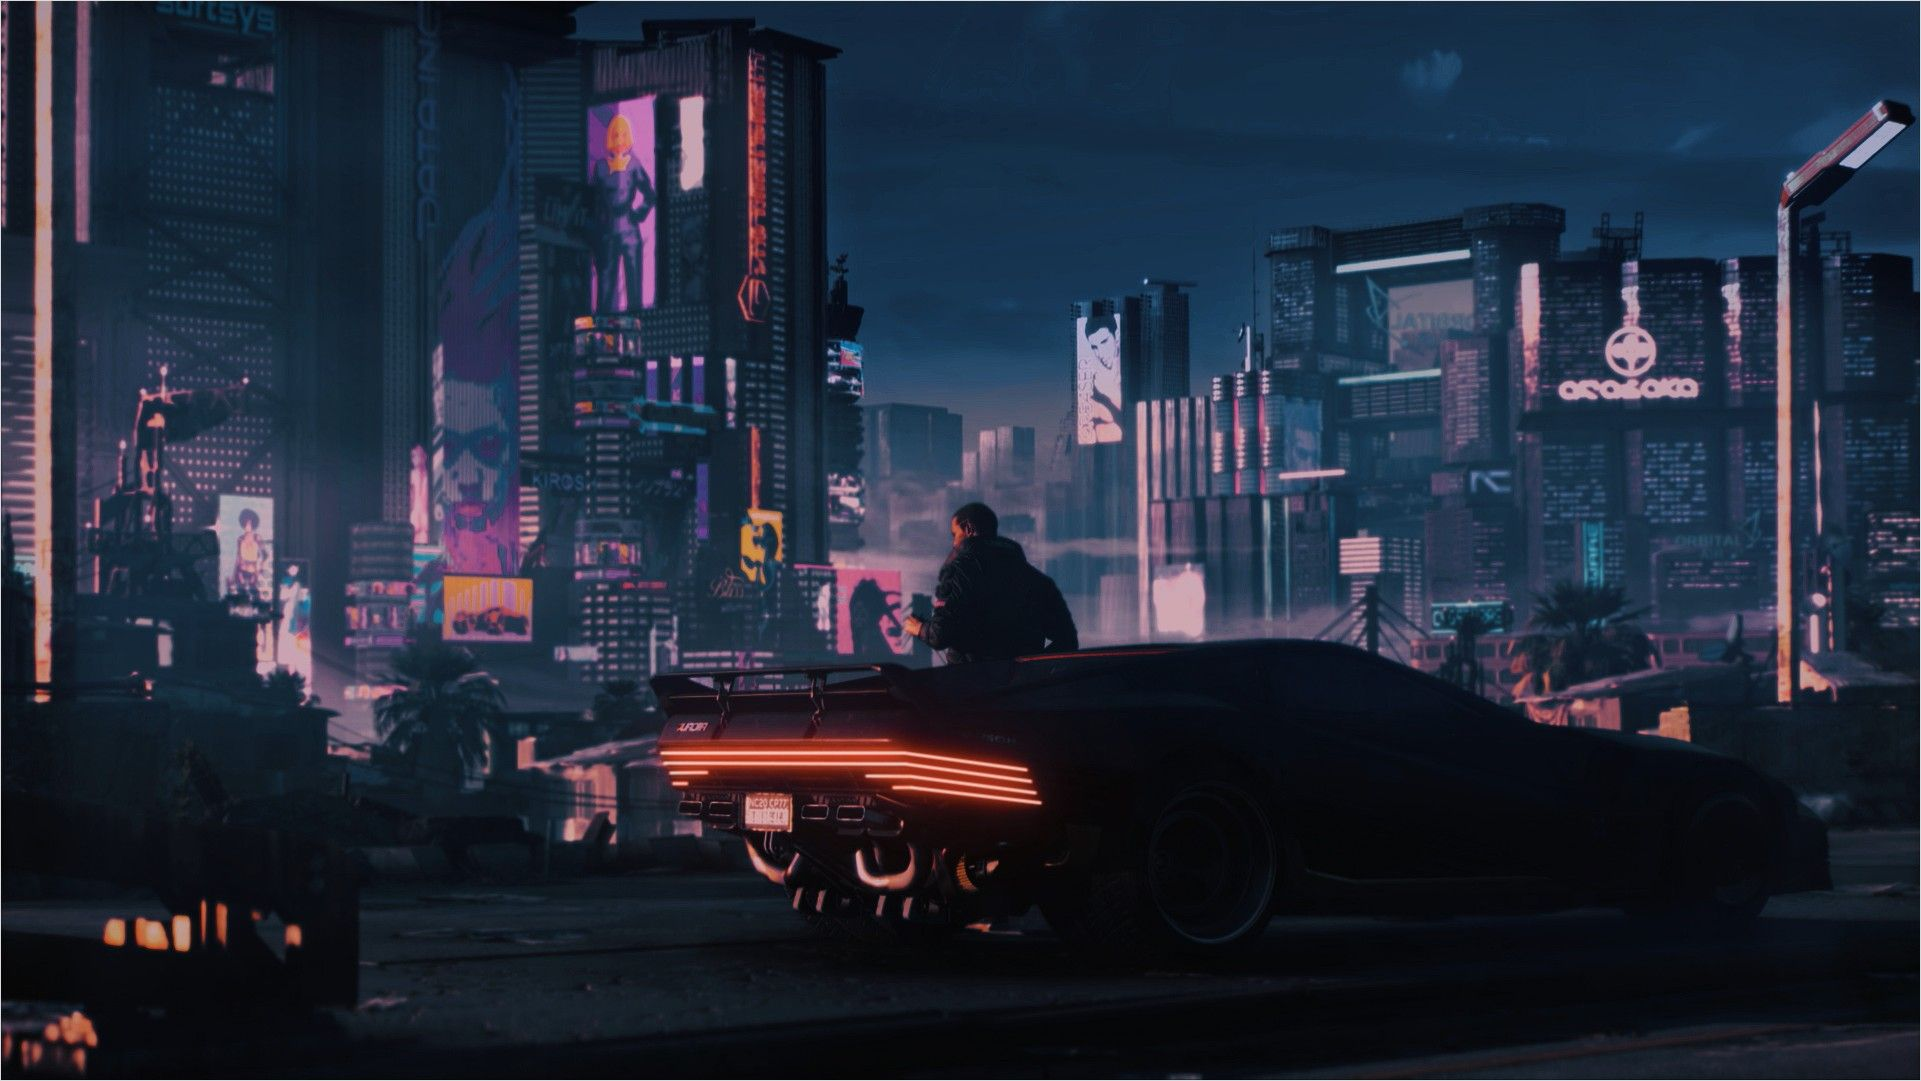 4k Cyberpunk Wallpaper Reddit In 2020 Cyberpunk 2077 Cyberpunk Beach Painting